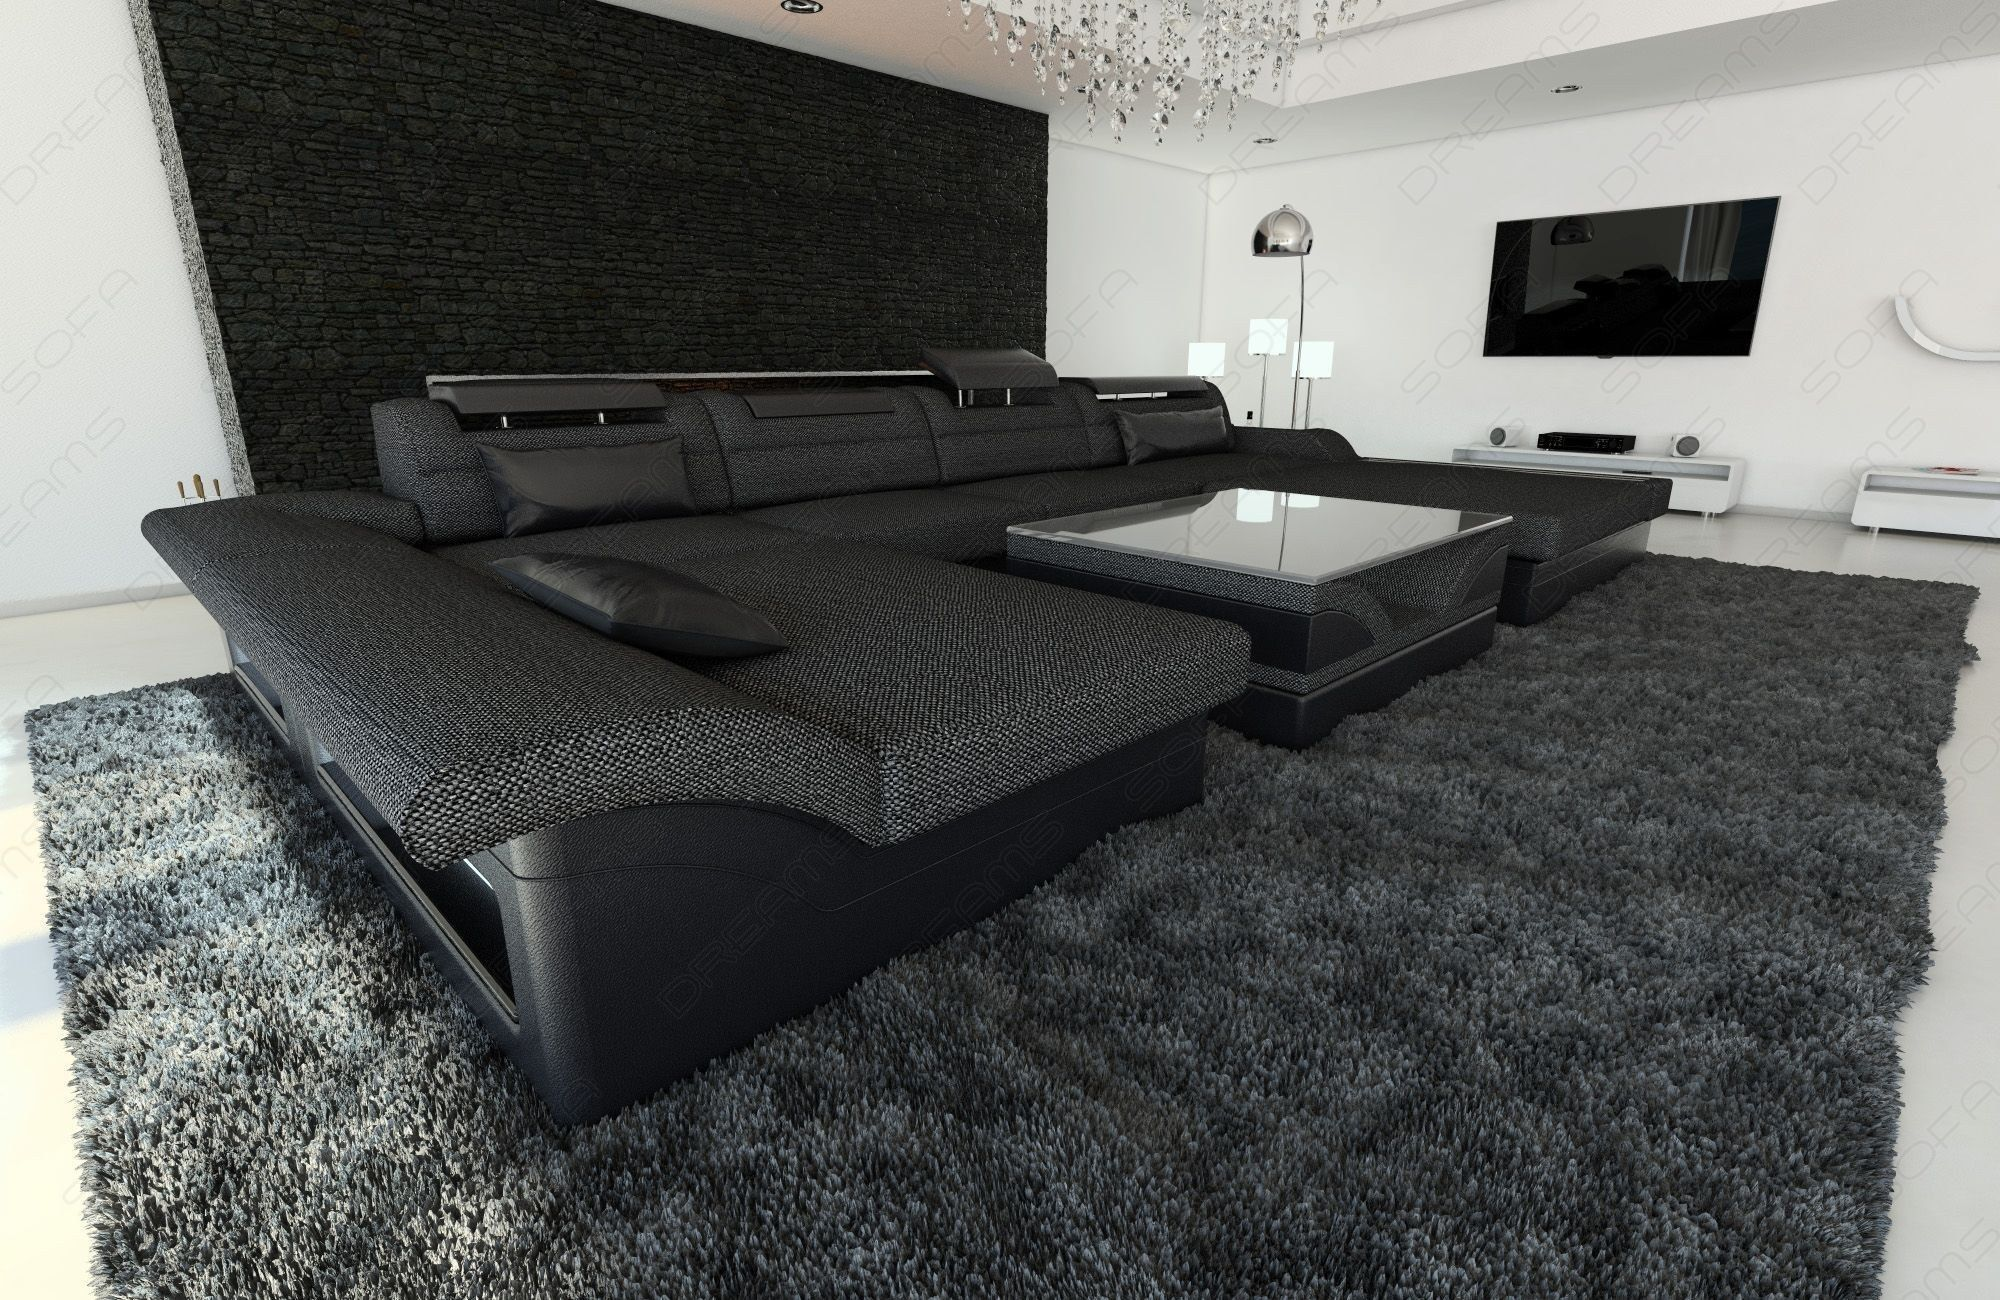 Fabric Sectional Sofa Chicago LED | Luxusschlafzimmer ...